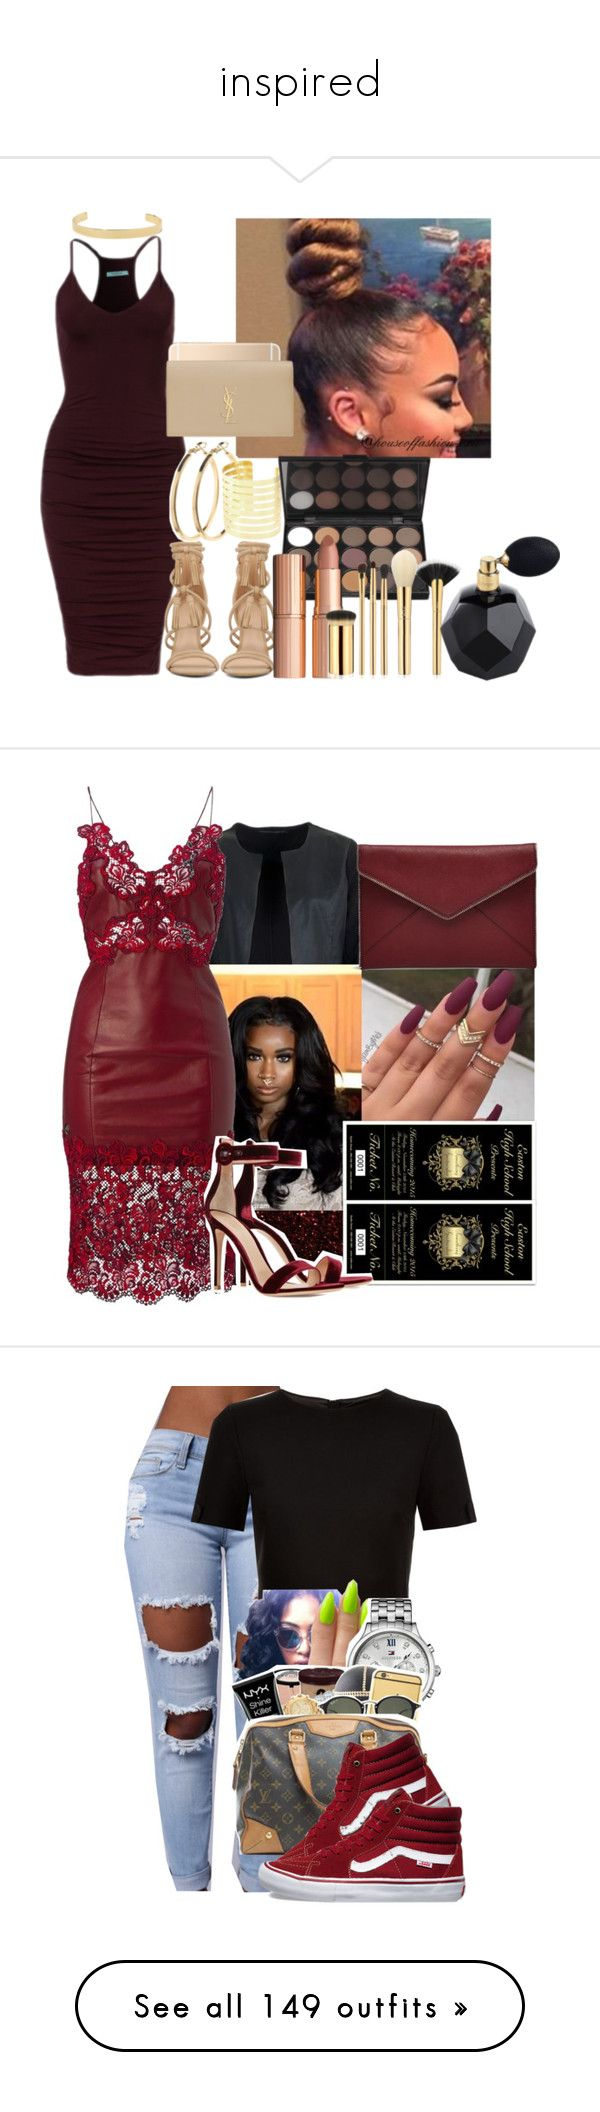 """""""inspired"""" by deonnnni-stewarrrrt ❤ liked on Polyvore featuring ALDO, Jennifer Fisher, Pieces, Yves Saint Laurent, Charlotte Tilbury, tarte, Gianvito Rossi, Rebecca Minkoff, Ted Baker and Tommy Hilfiger"""